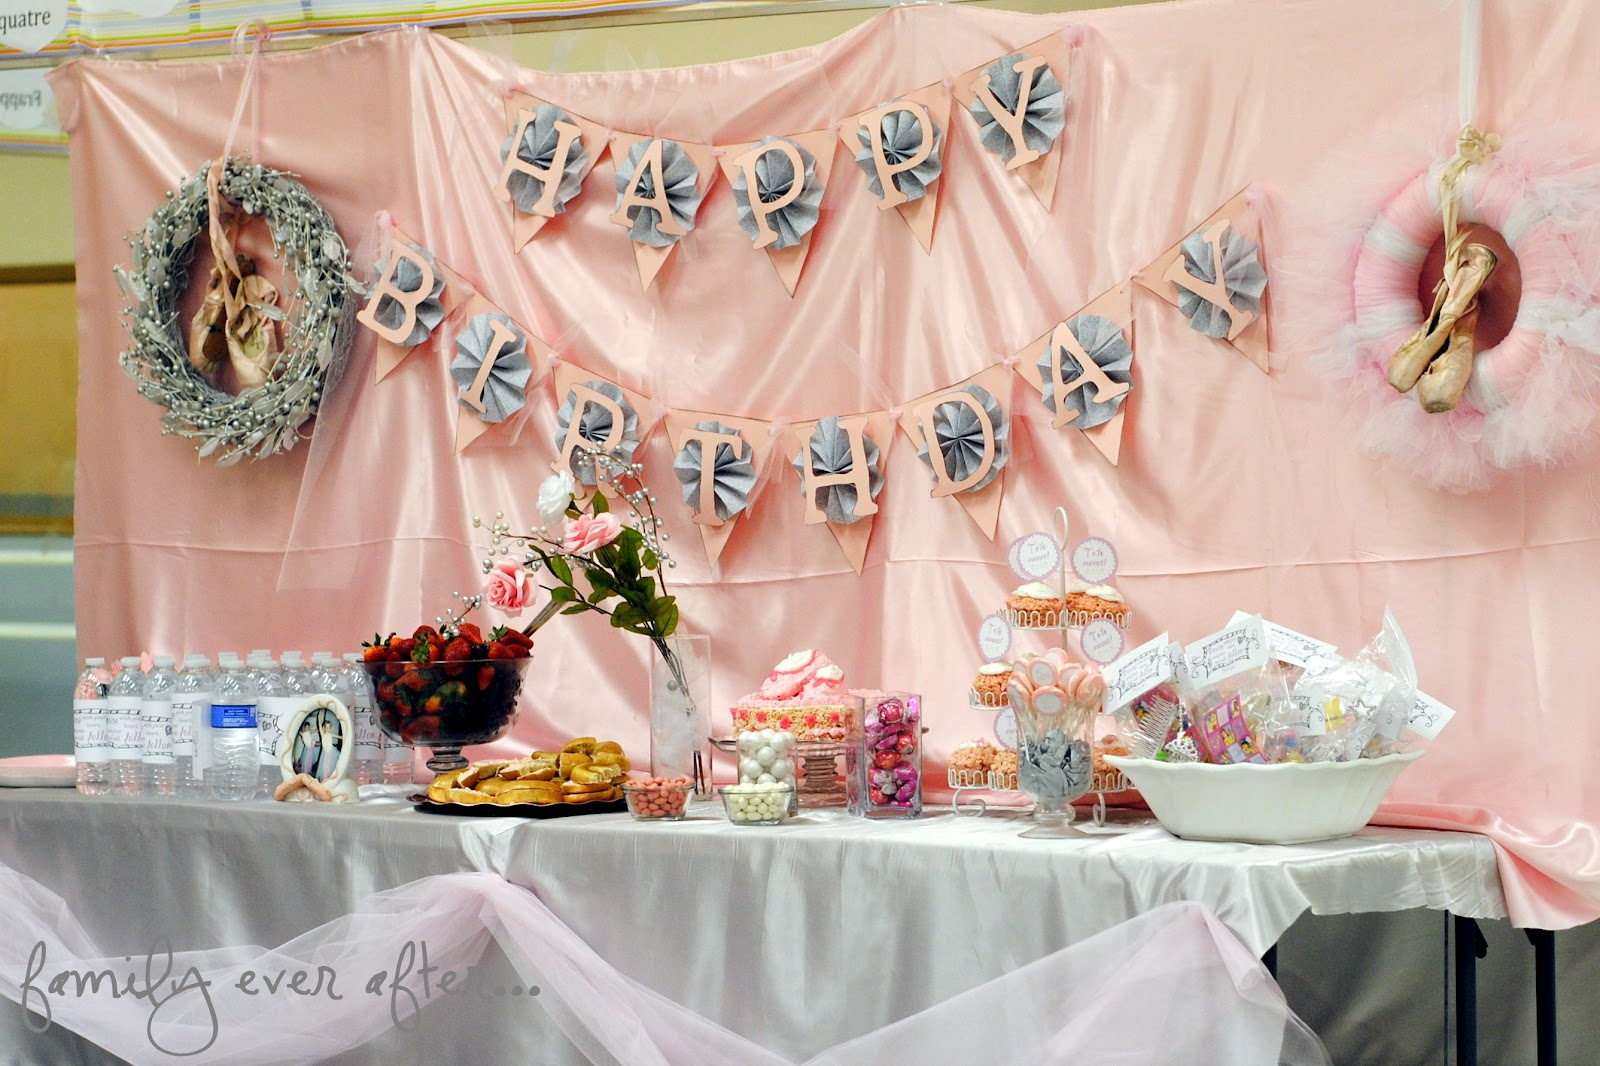 Family ever after ballet birthday party banner for Ballerina party decoration ideas